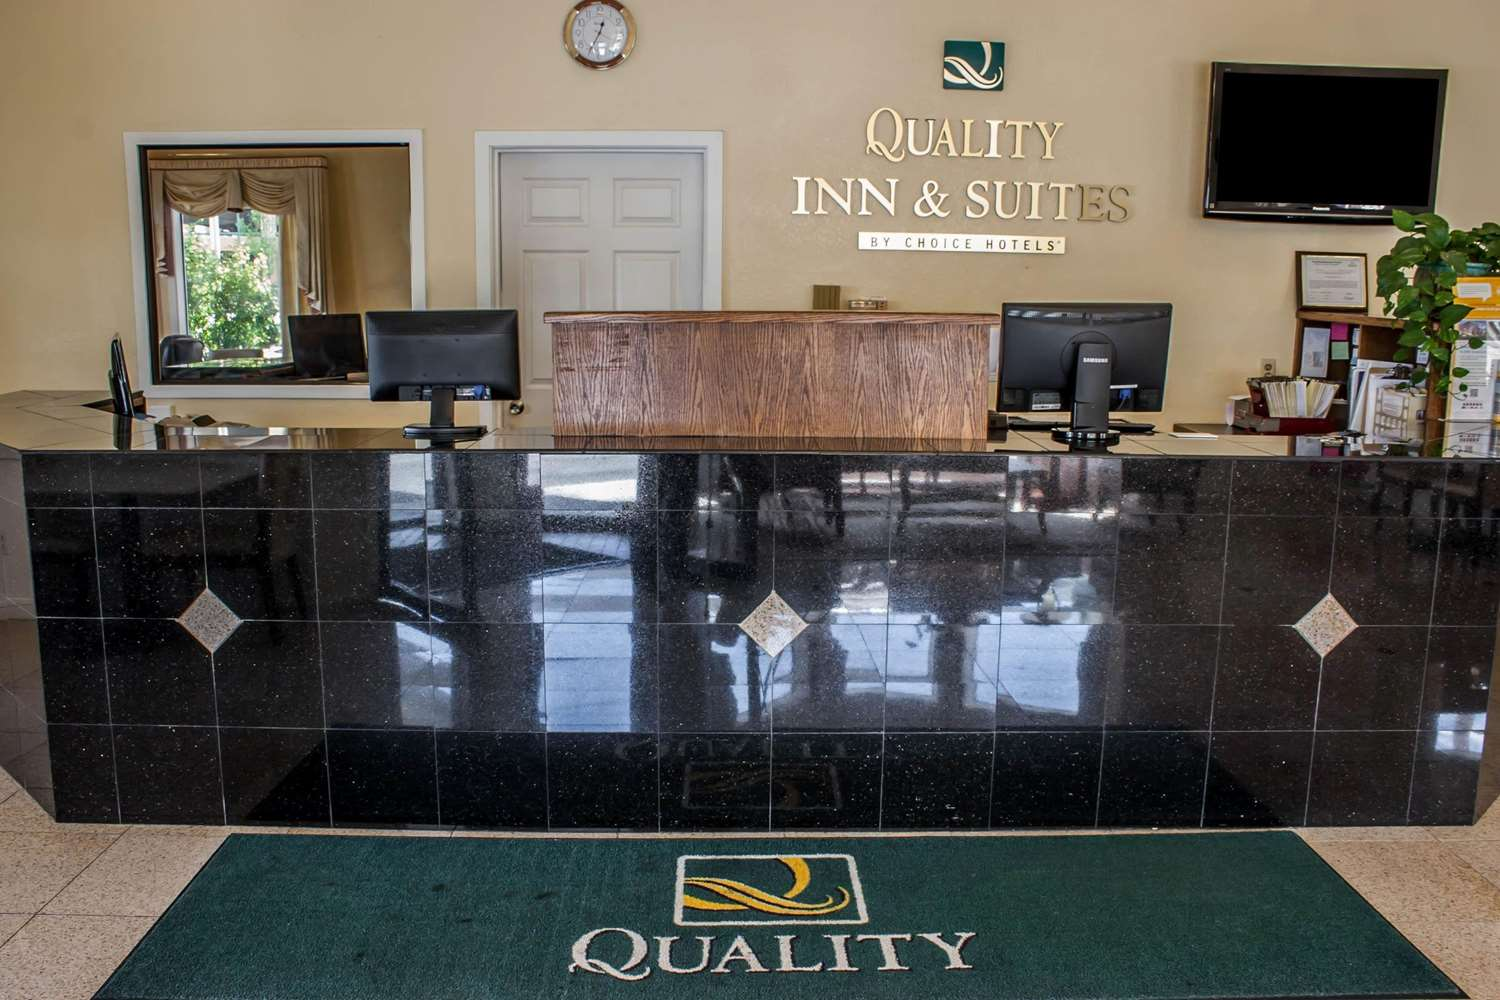 Lobby - Quality Inn & Suites Fife